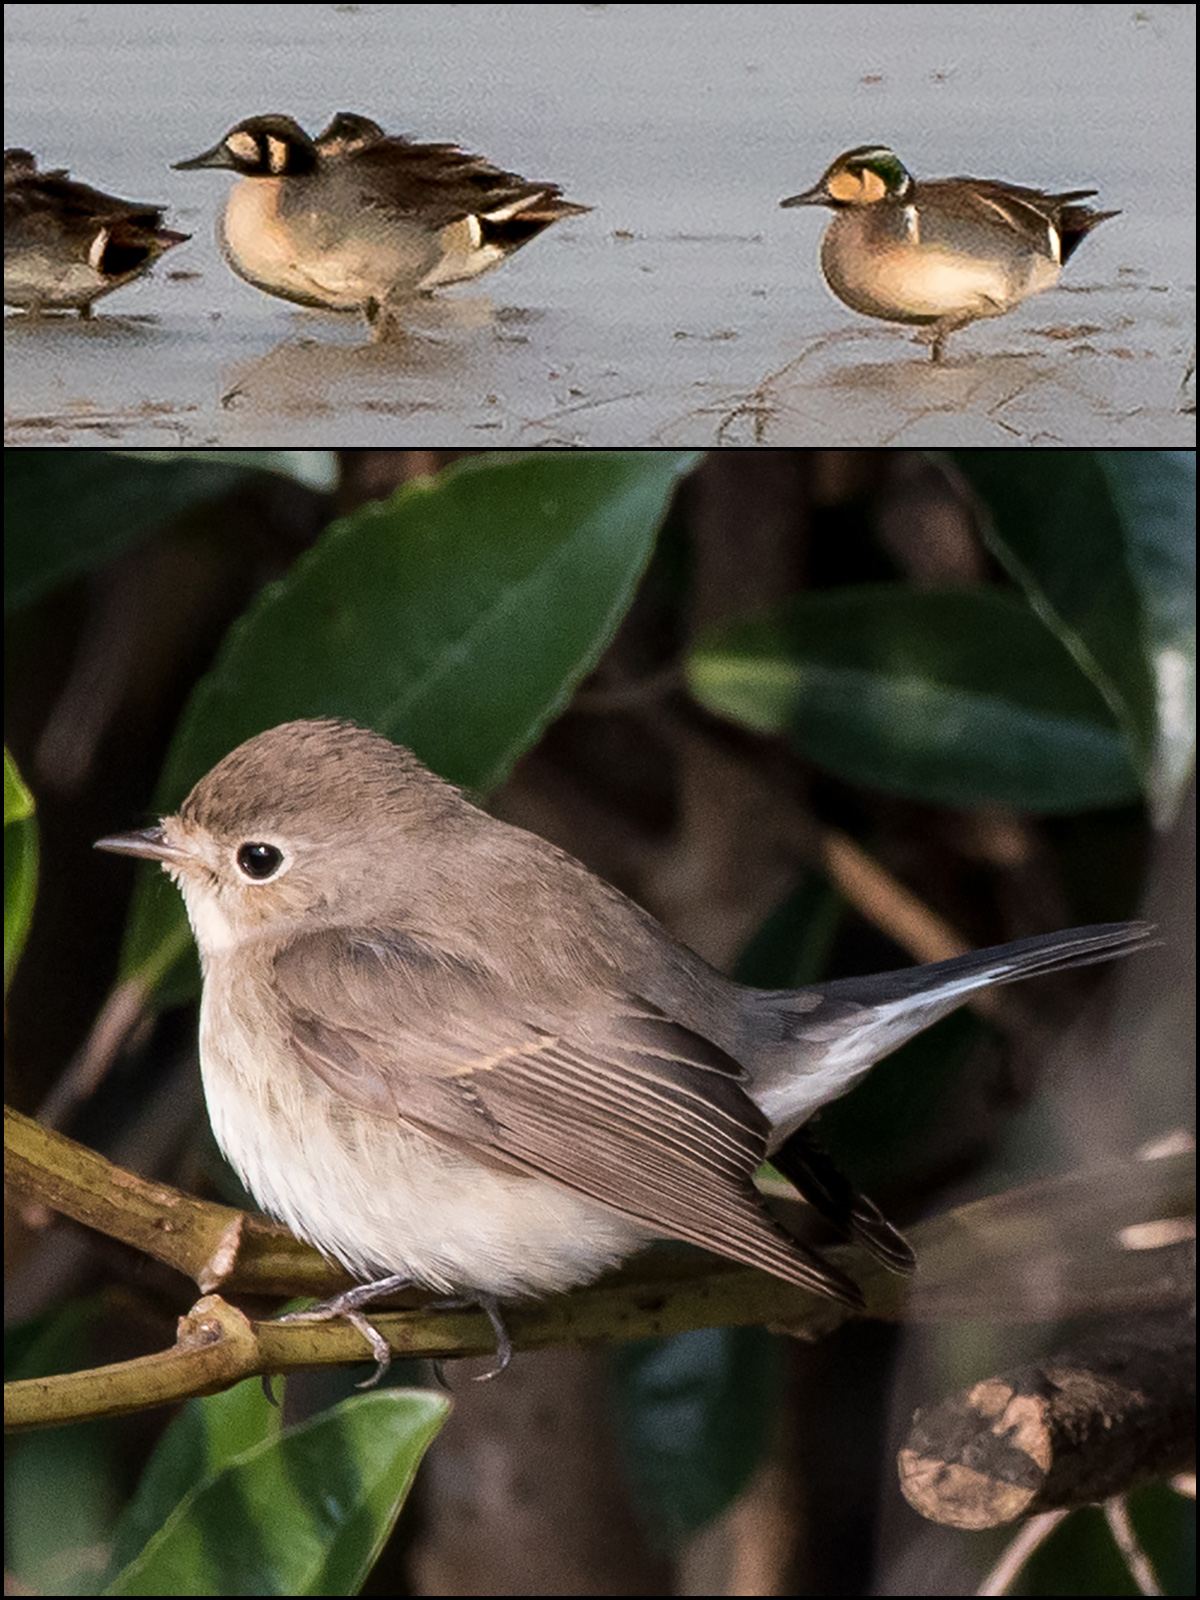 Top: hybrid Baikal Teal x Northern Pintail (L) and Baikal Teal. Bottom: Red-breasted Flycatcher, resident at Magic Parking Lot, Nanhui since at least 6 Dec. Photos by Hǎo Zhàokuān (郝兆宽).